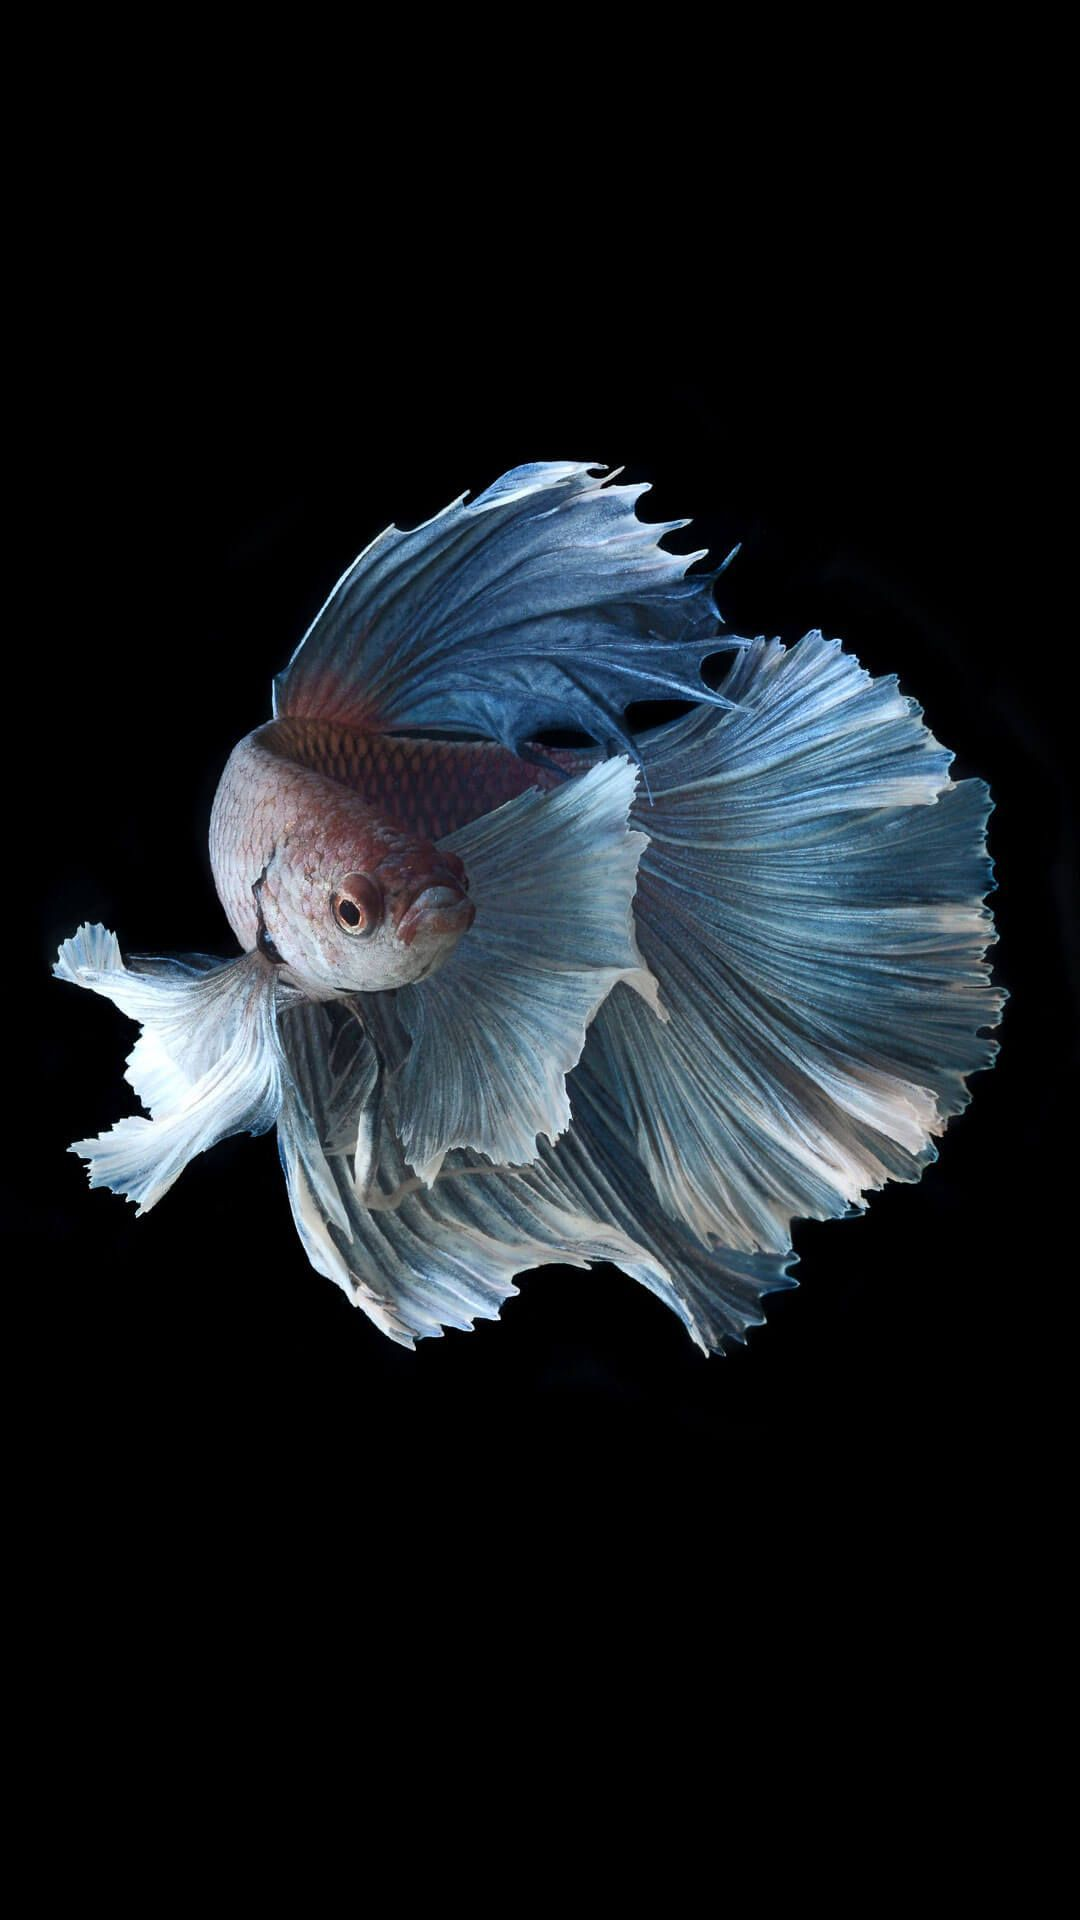 1080x1920 Betta Fish iPhone 6 Plus Wallpaper HD | ♡ Animals & Insects ...